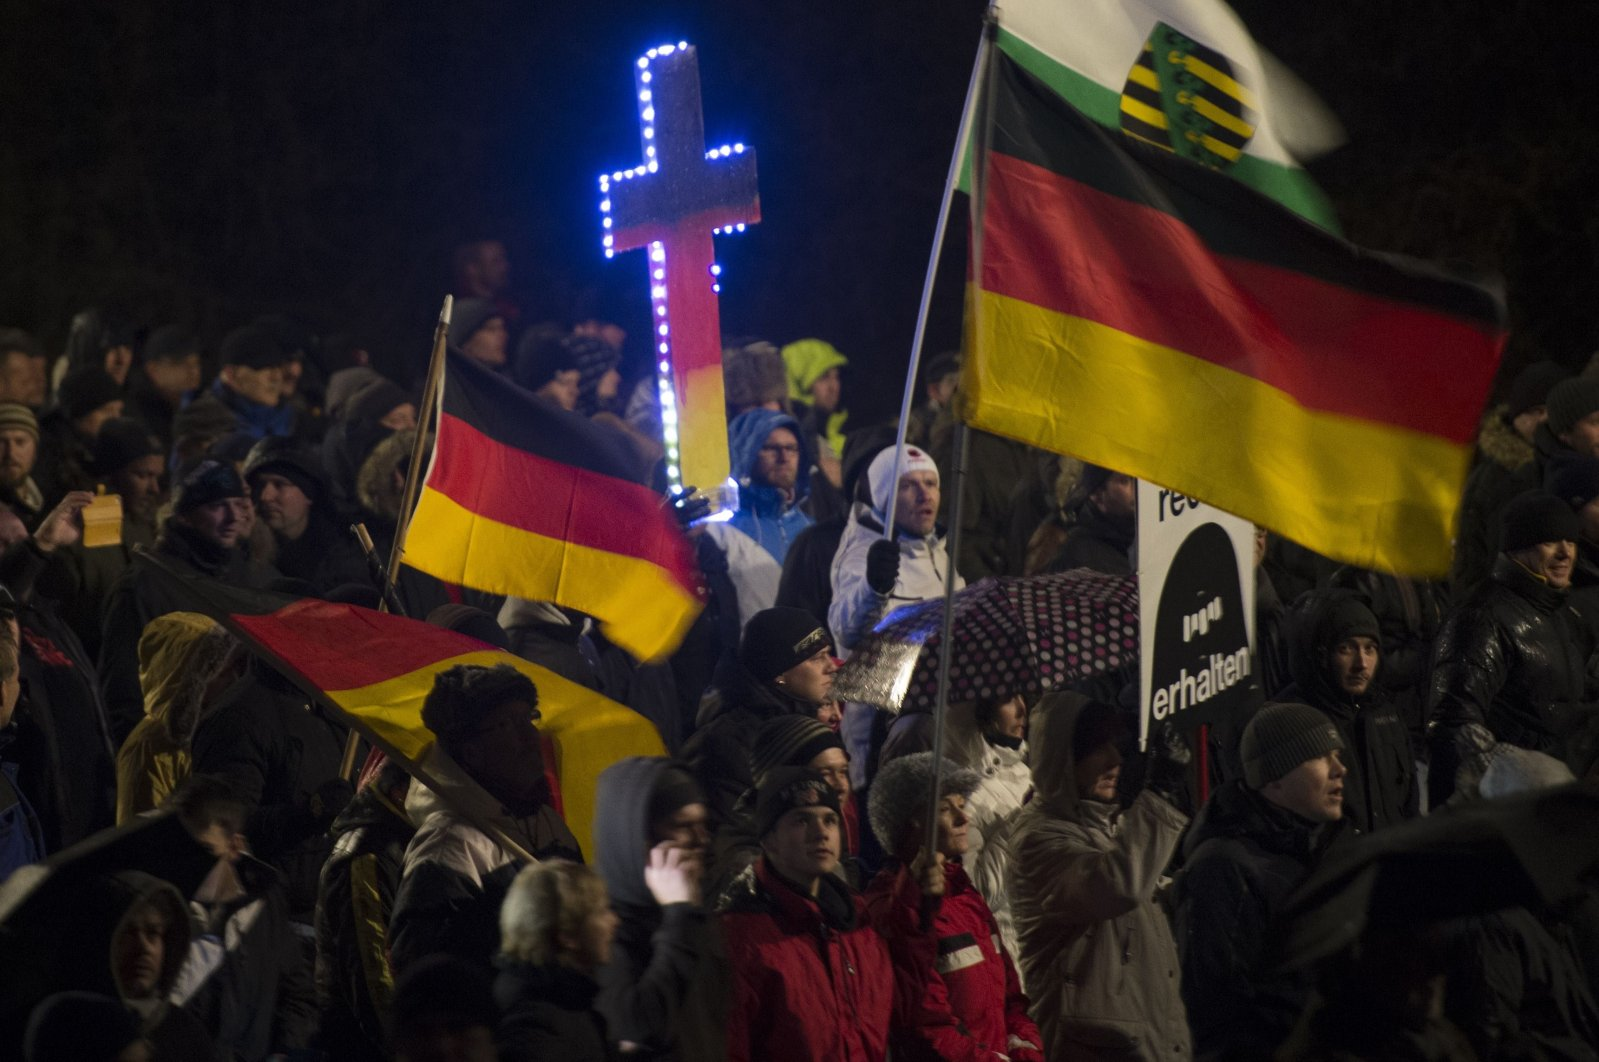 A demonstrator holds a crucifix in the colors of Germany during a rally by a mounting right-wing populist movement called PEGIDA on Jan. 5, 2015, in Dresden. (AFP Photo)